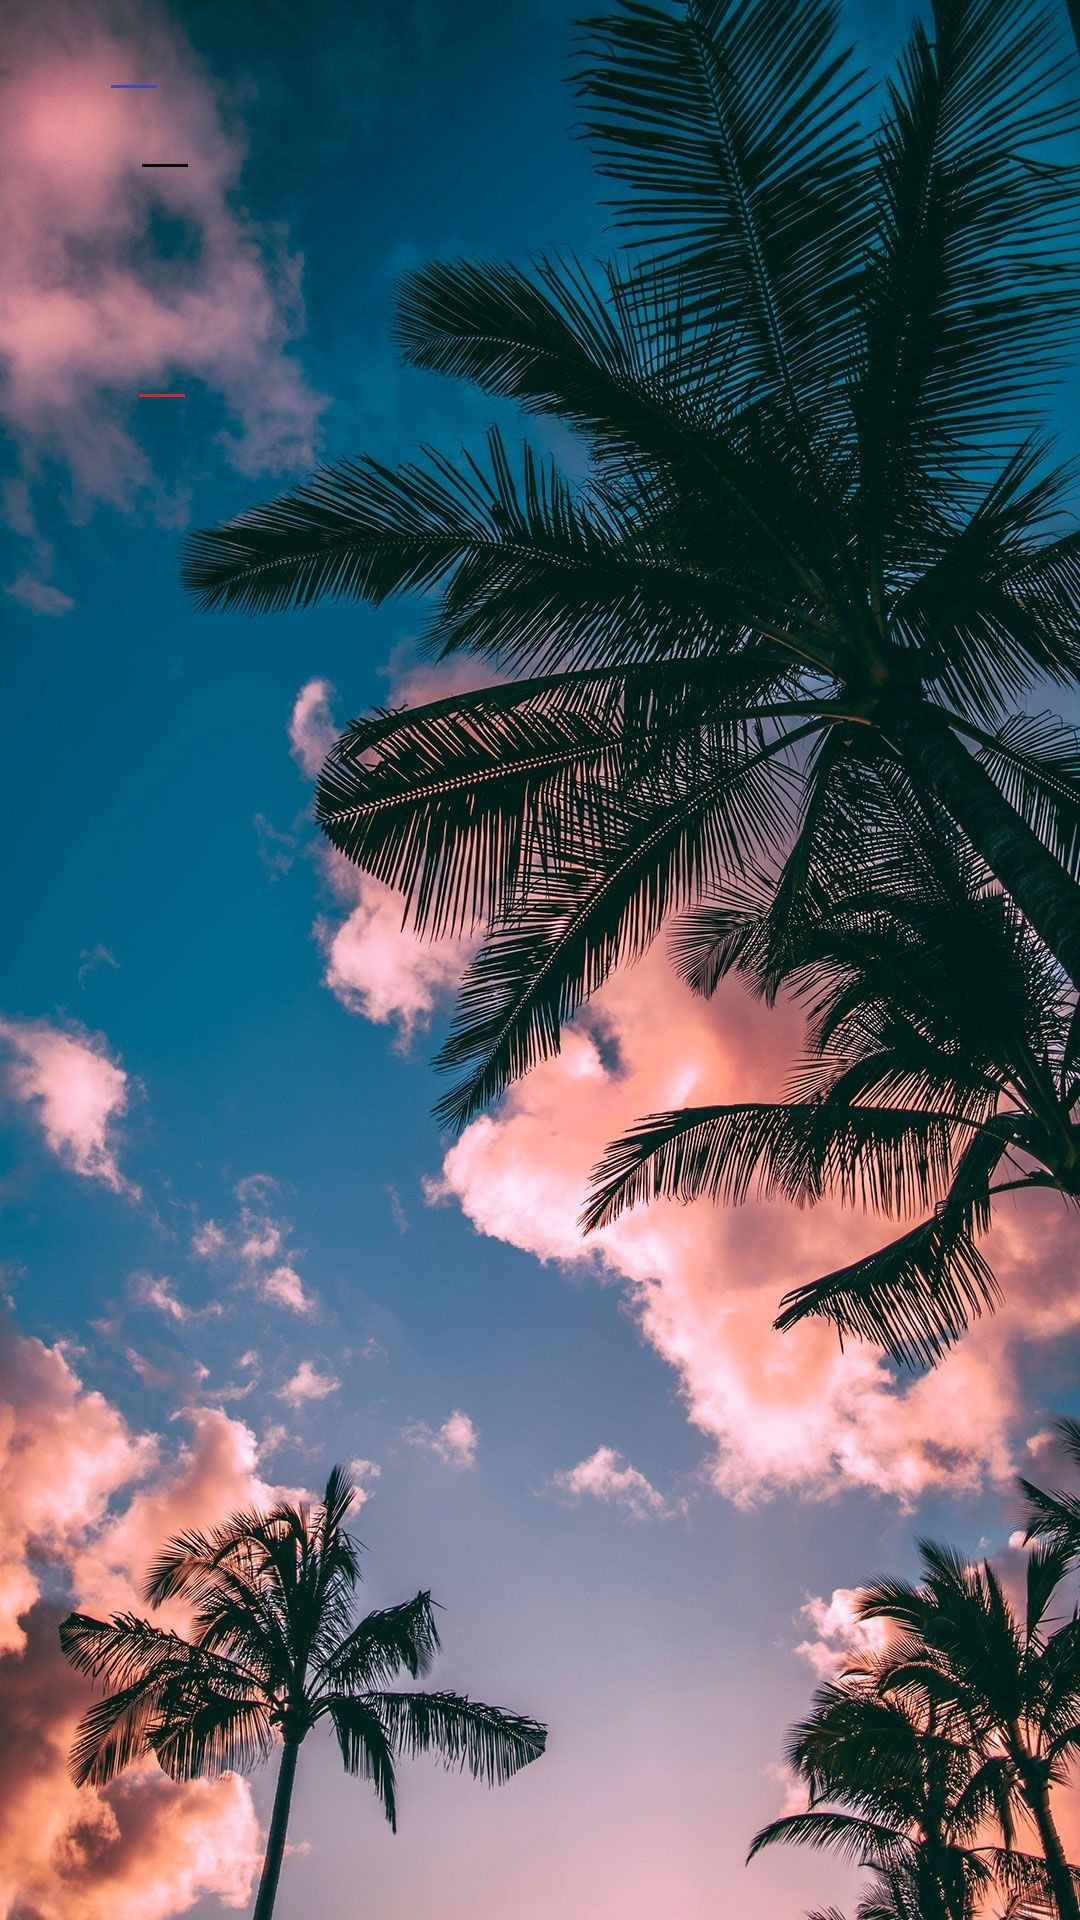 Palm Leaves Background Fondecraniphone Beautiful Free Beach Wallpapers For Your Phone Or Deskto Beach Wallpaper Background Hd Wallpaper Palm Tree Images